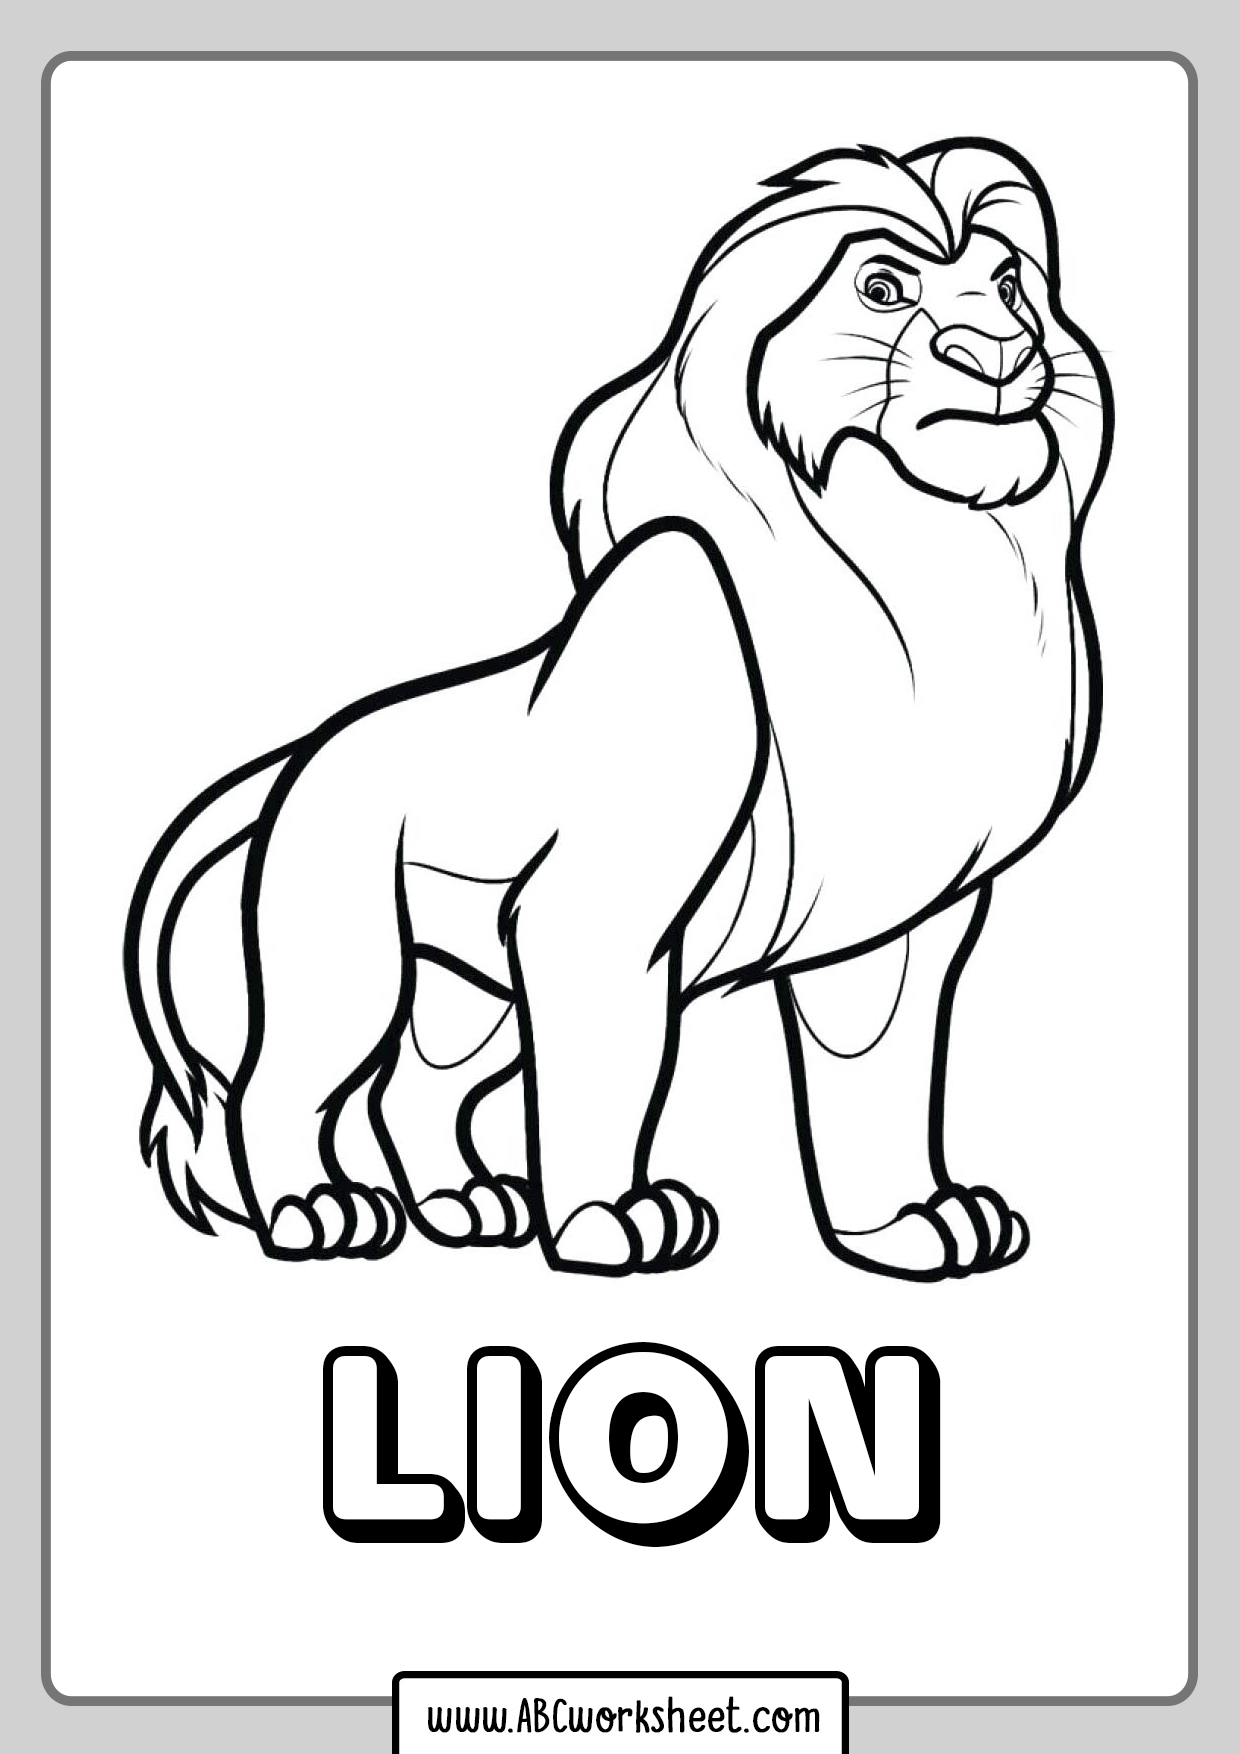 Lion King Coloring Pages For Kids